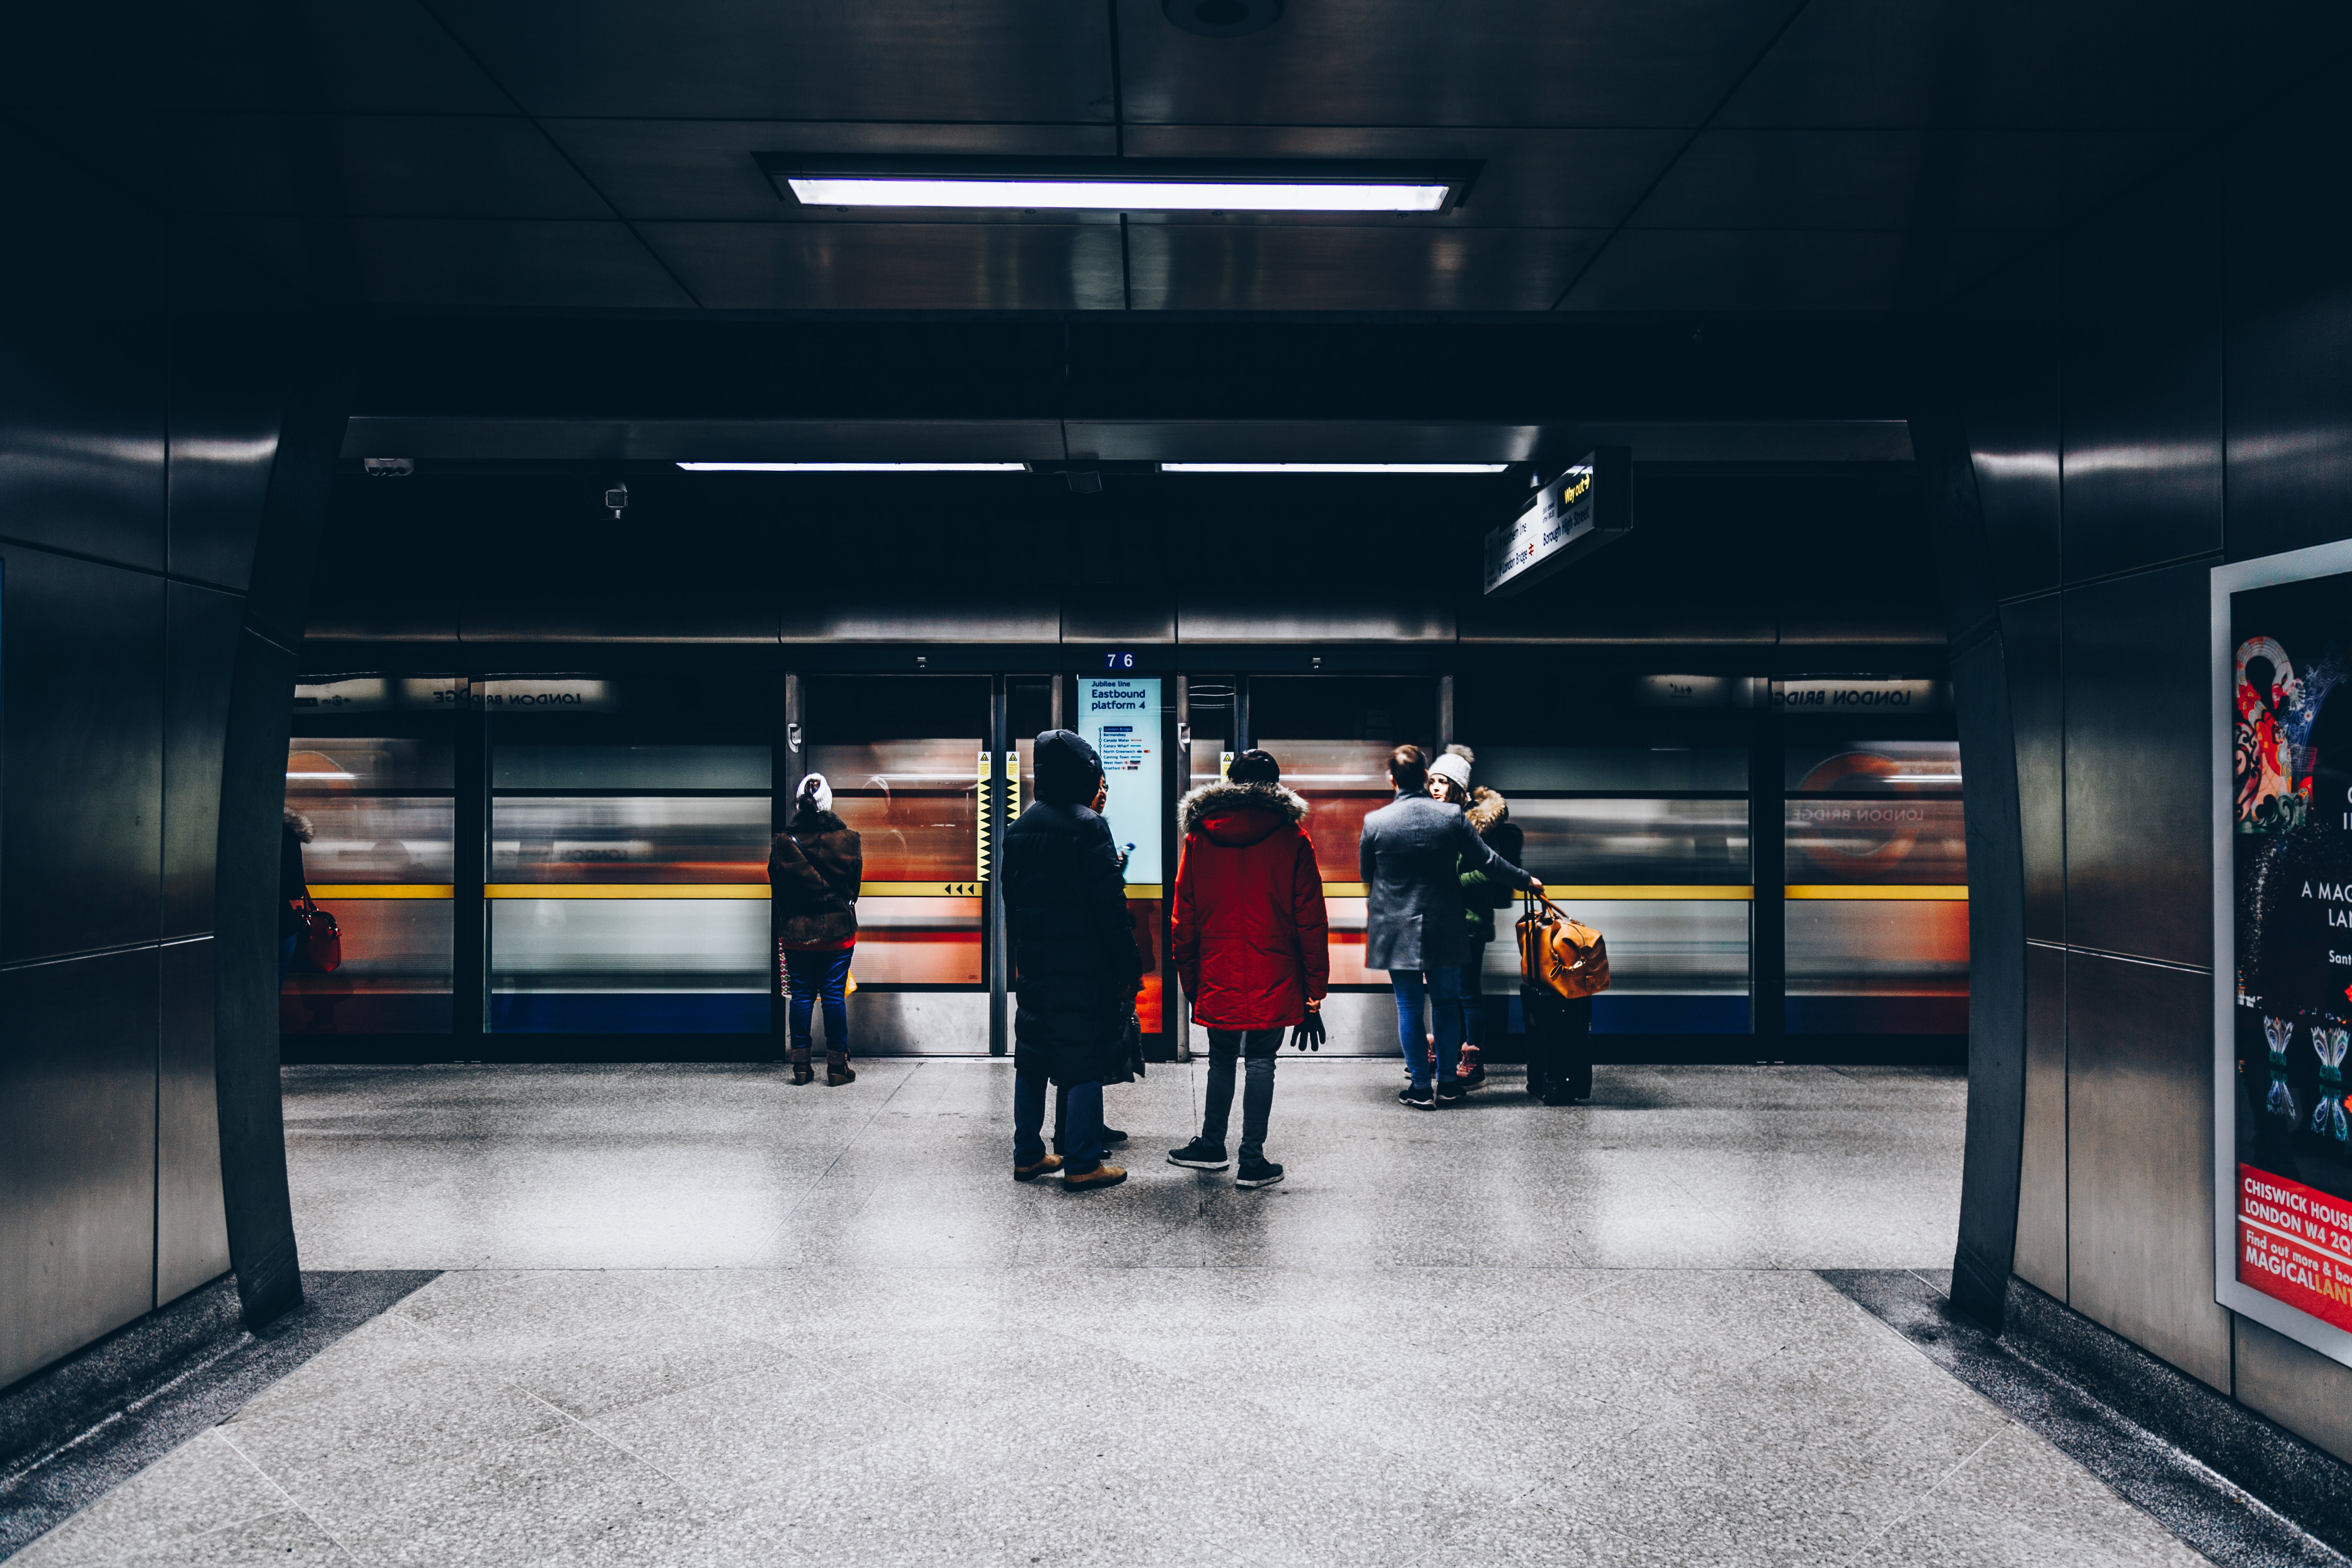 people waiting for train in station